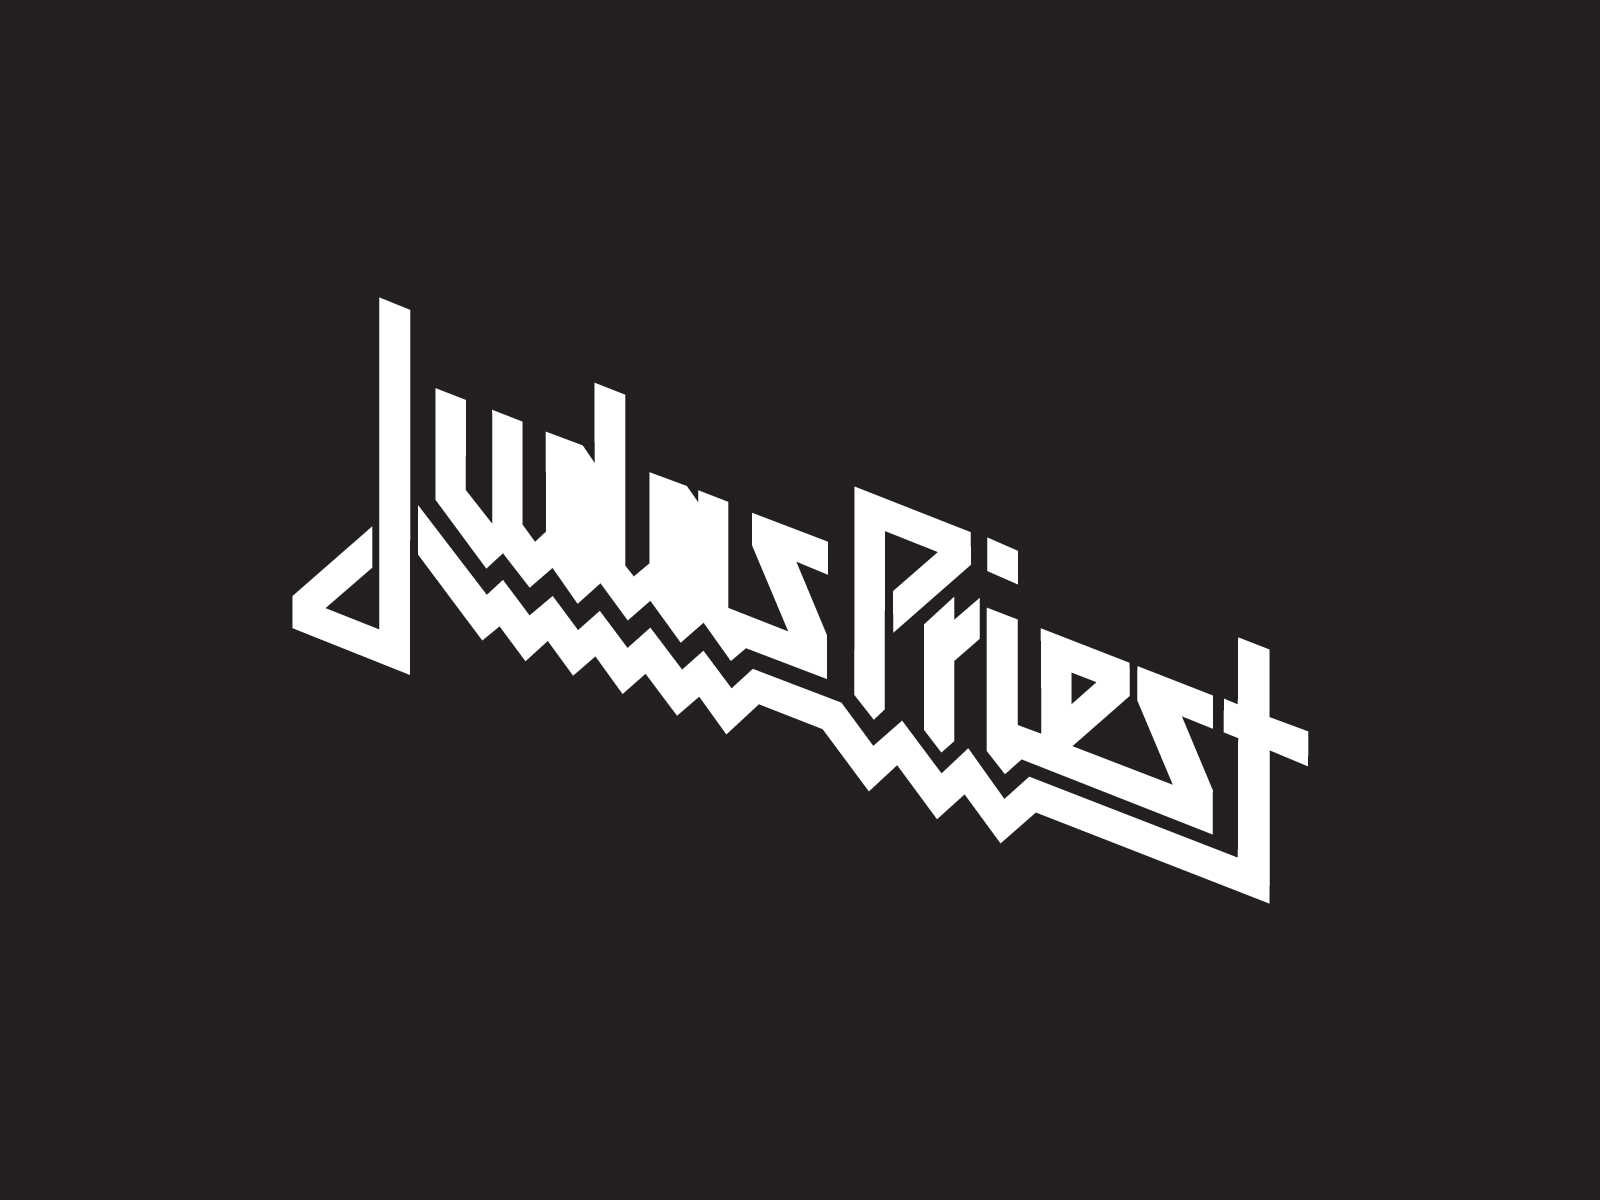 Judas Priest band logo wallpaper | Band logos - Rock band logos